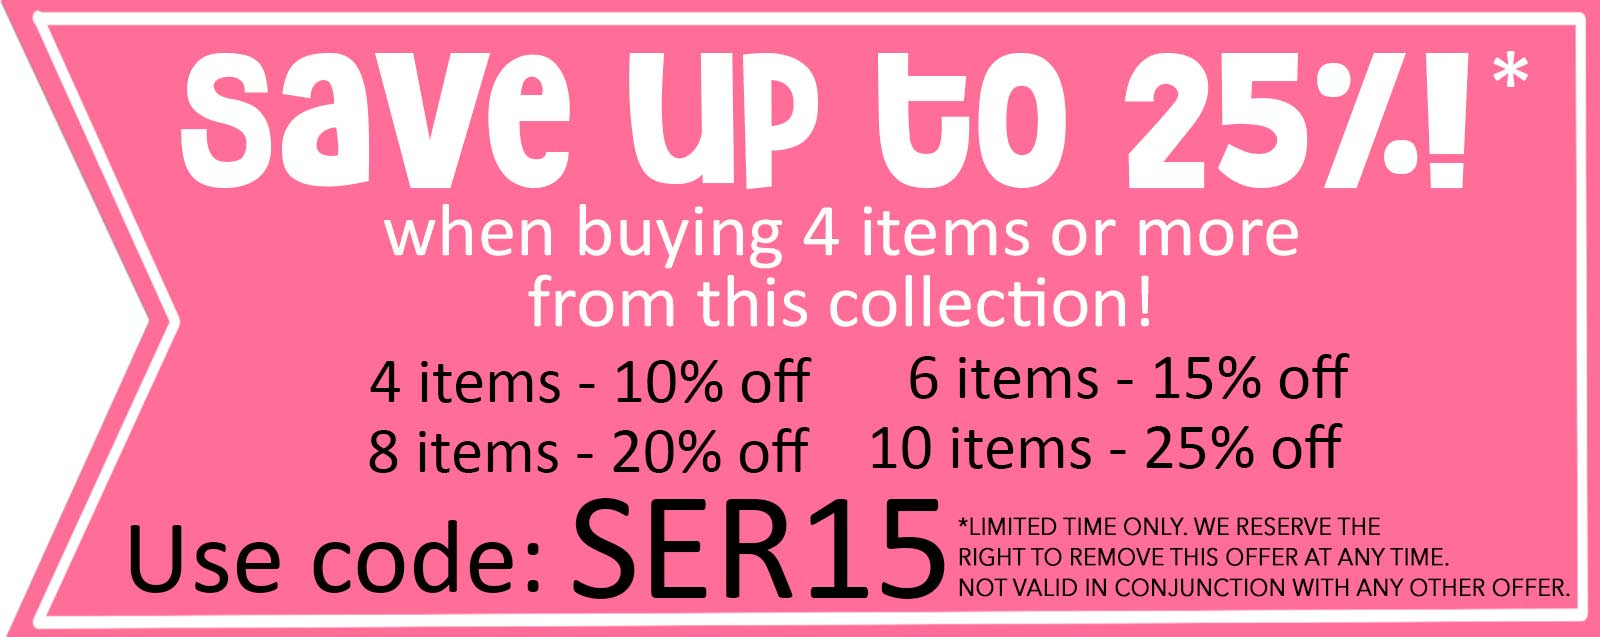 save 25% off this collection